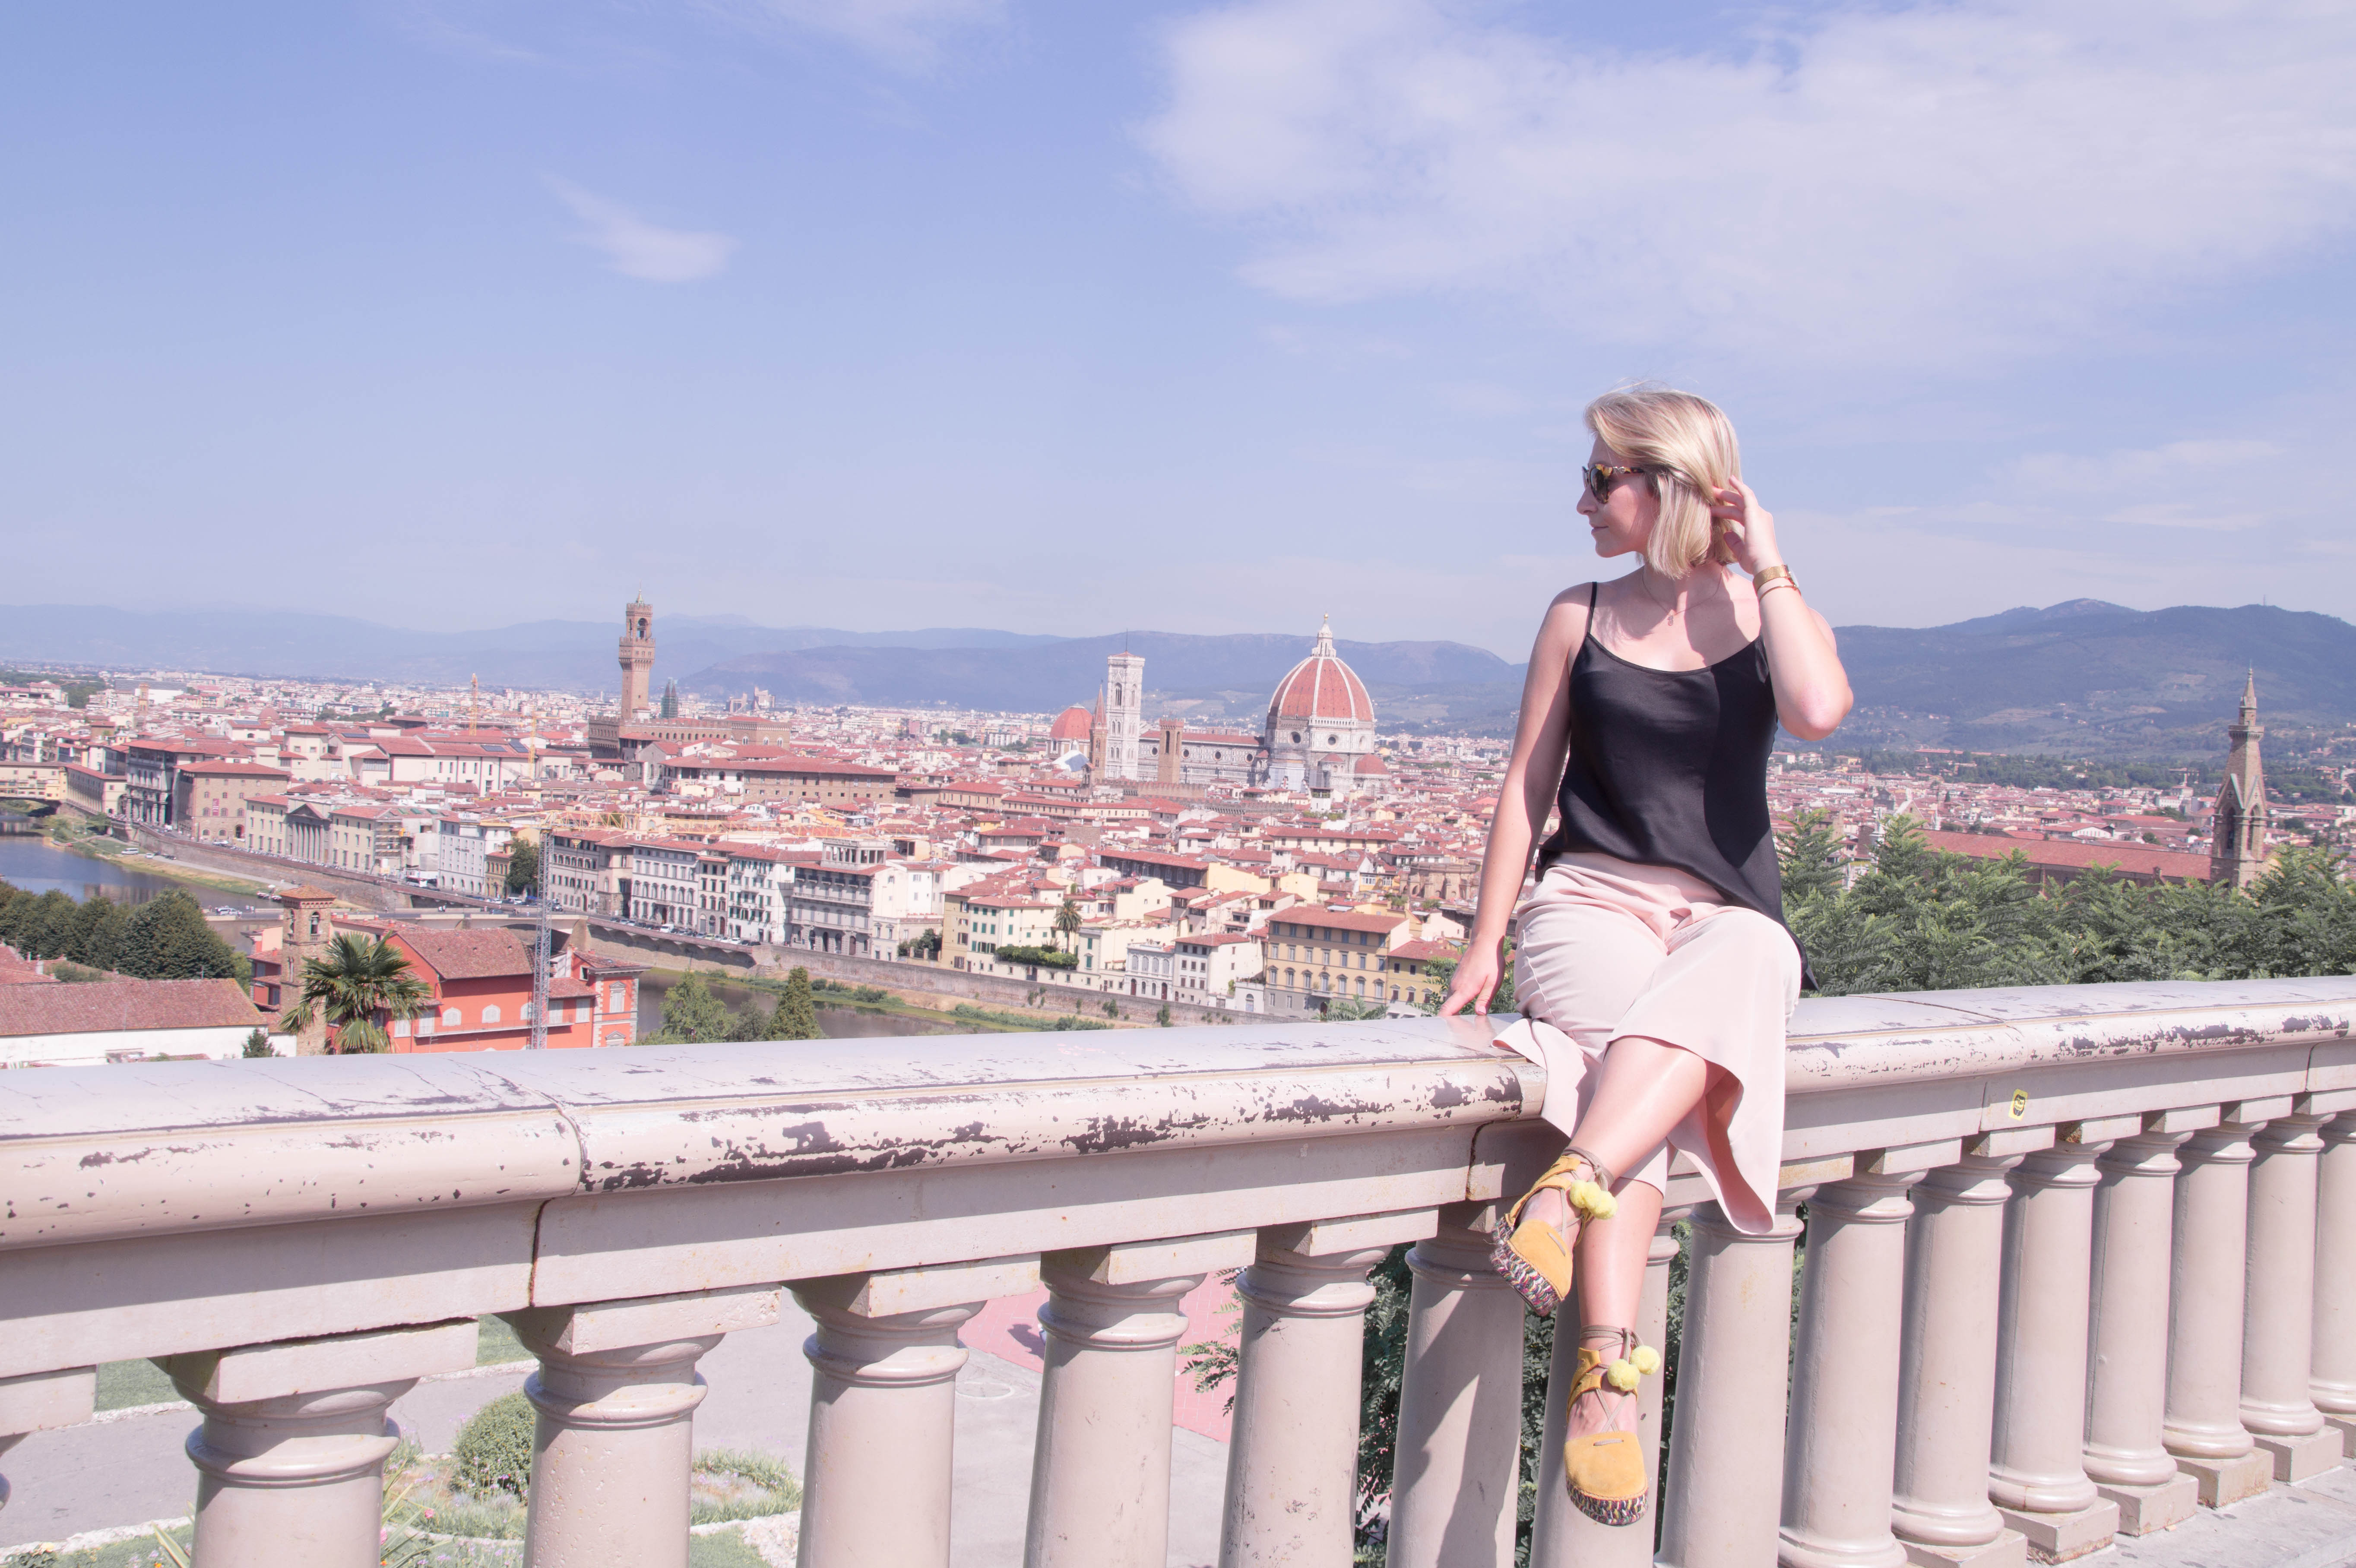 florence firenze italy travel outfit culottes espadrilles santa croce